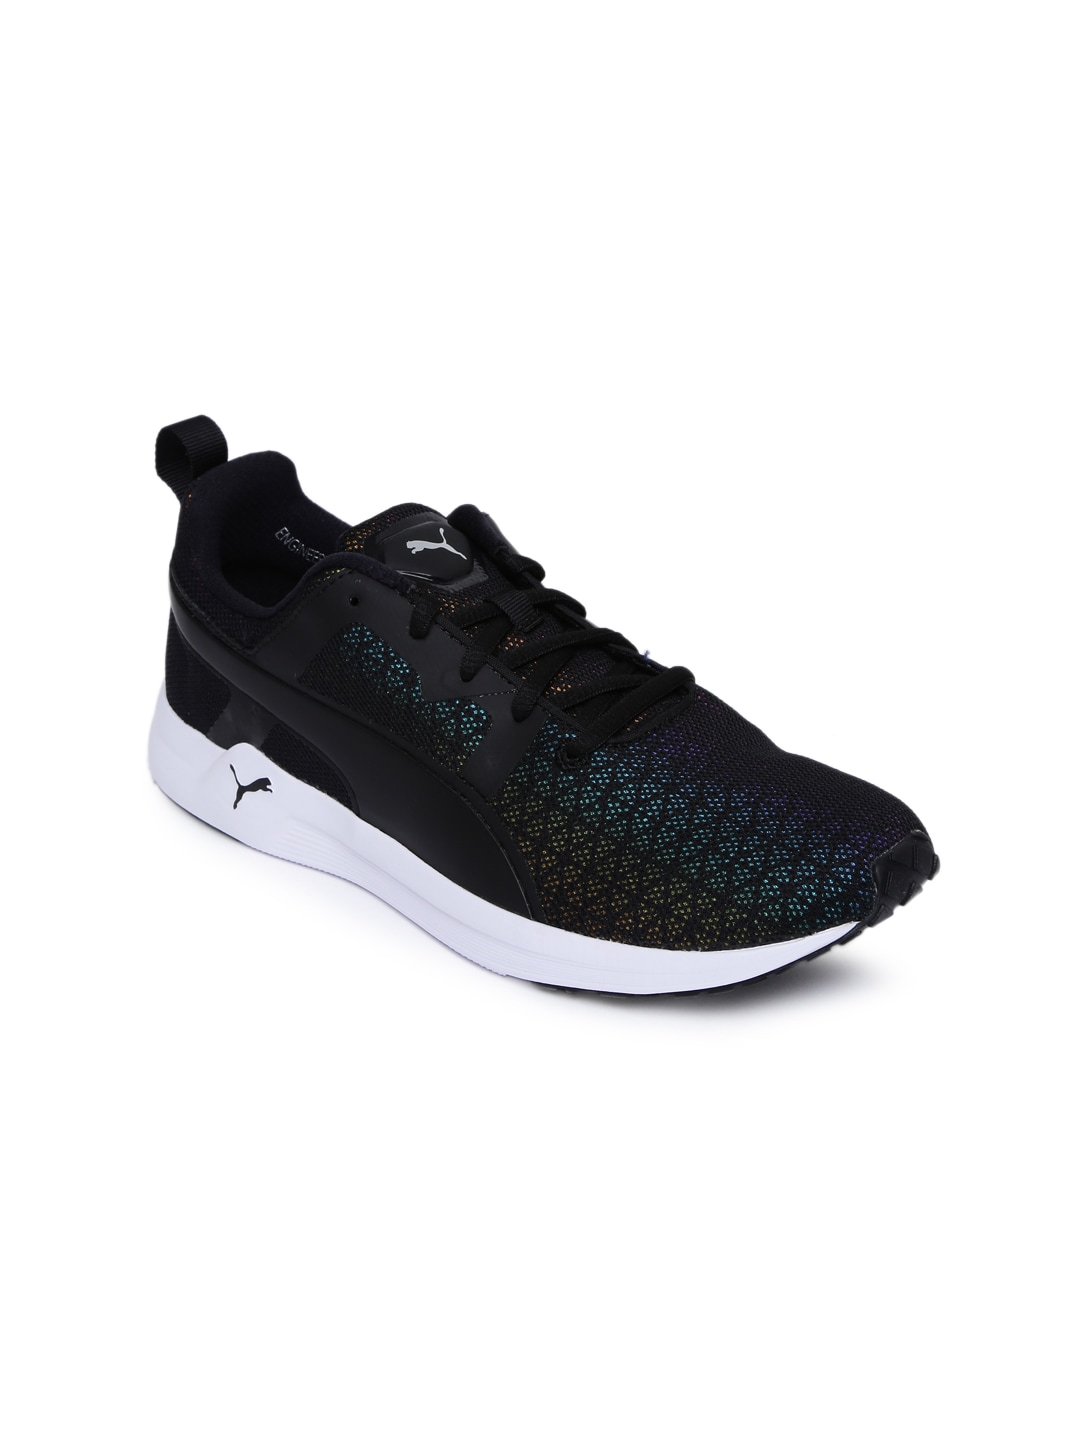 Puma 18897401 Women Black Pulse Xt V2 Prism Training Shoes- Price in India ef933002b